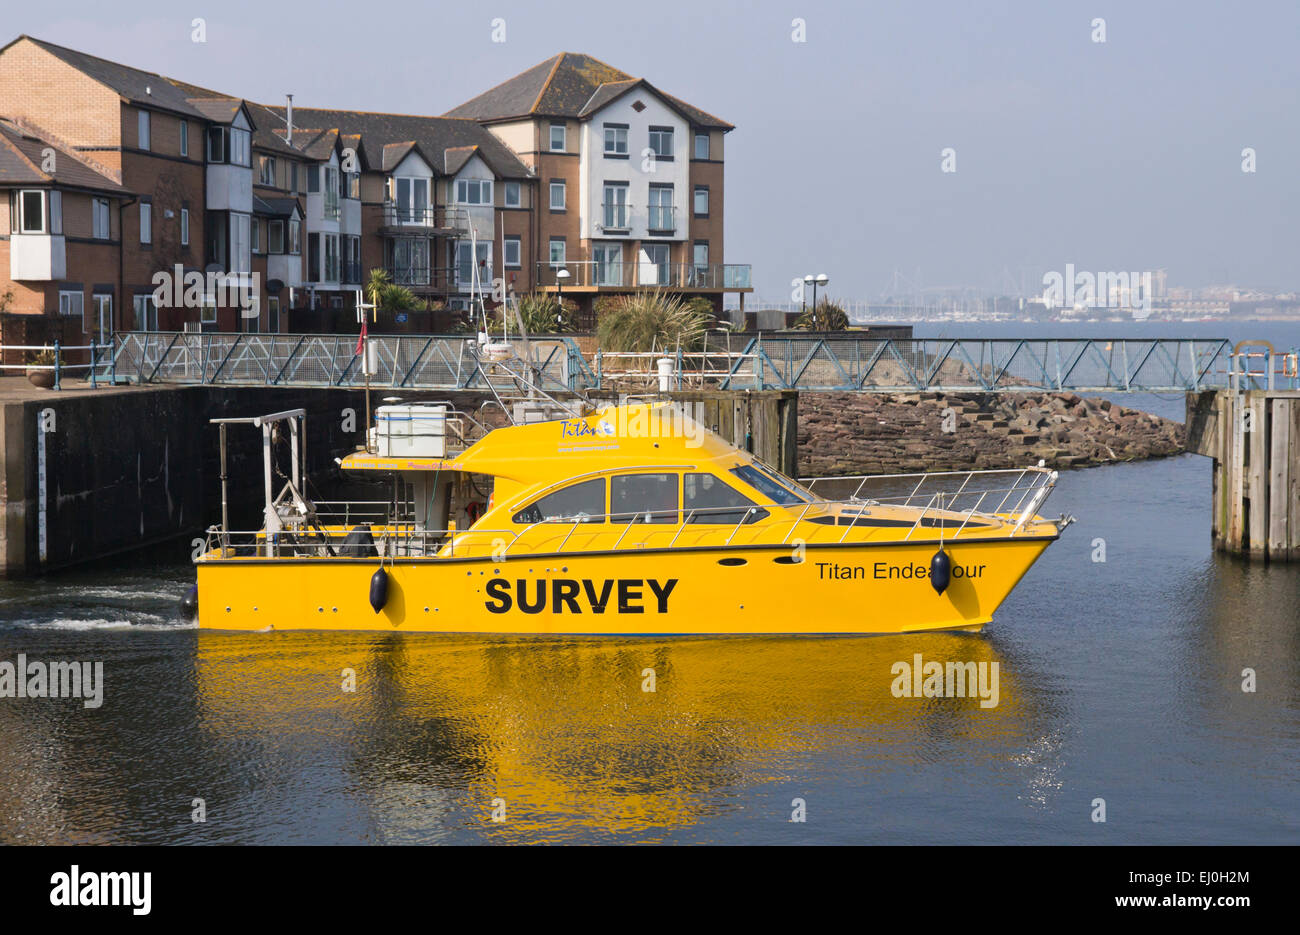 MV Titan Endeavour a survey vessel for Titan Environmental surveys Ltd, Penarth Marina. - Stock Image